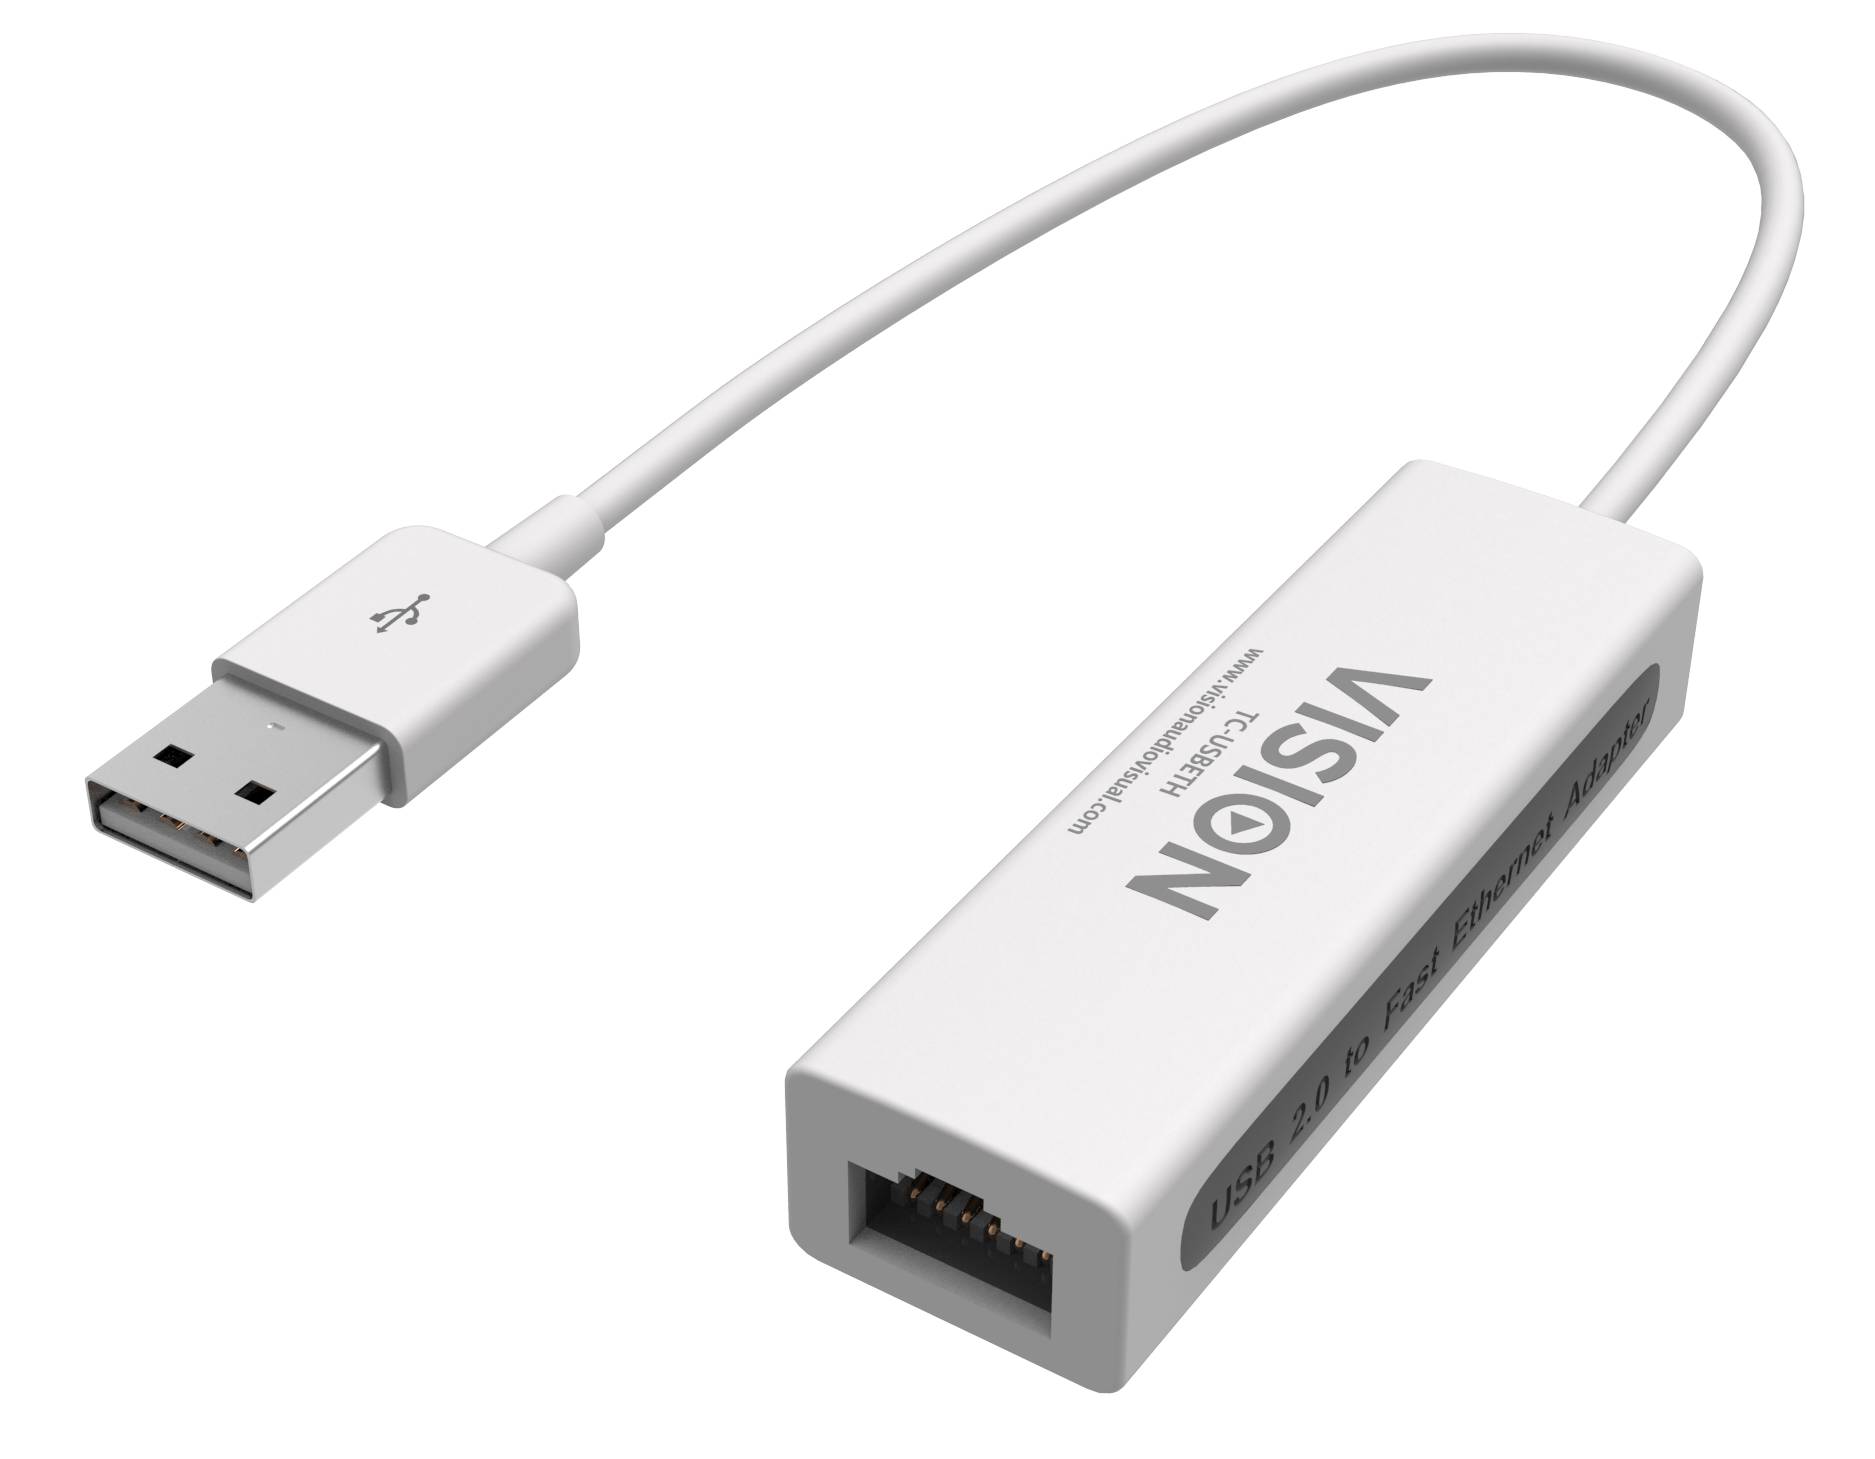 TC-USBETH Vision VISION TECHCONNECT USB ETHERNET ADAPTOR Engineered Connectivity Solution, White Chassis, USB 2.0 To Ethernet 10/100Mbps, Works With Mac And PC, Integrated Fast Ethernet MAC,  - C2000